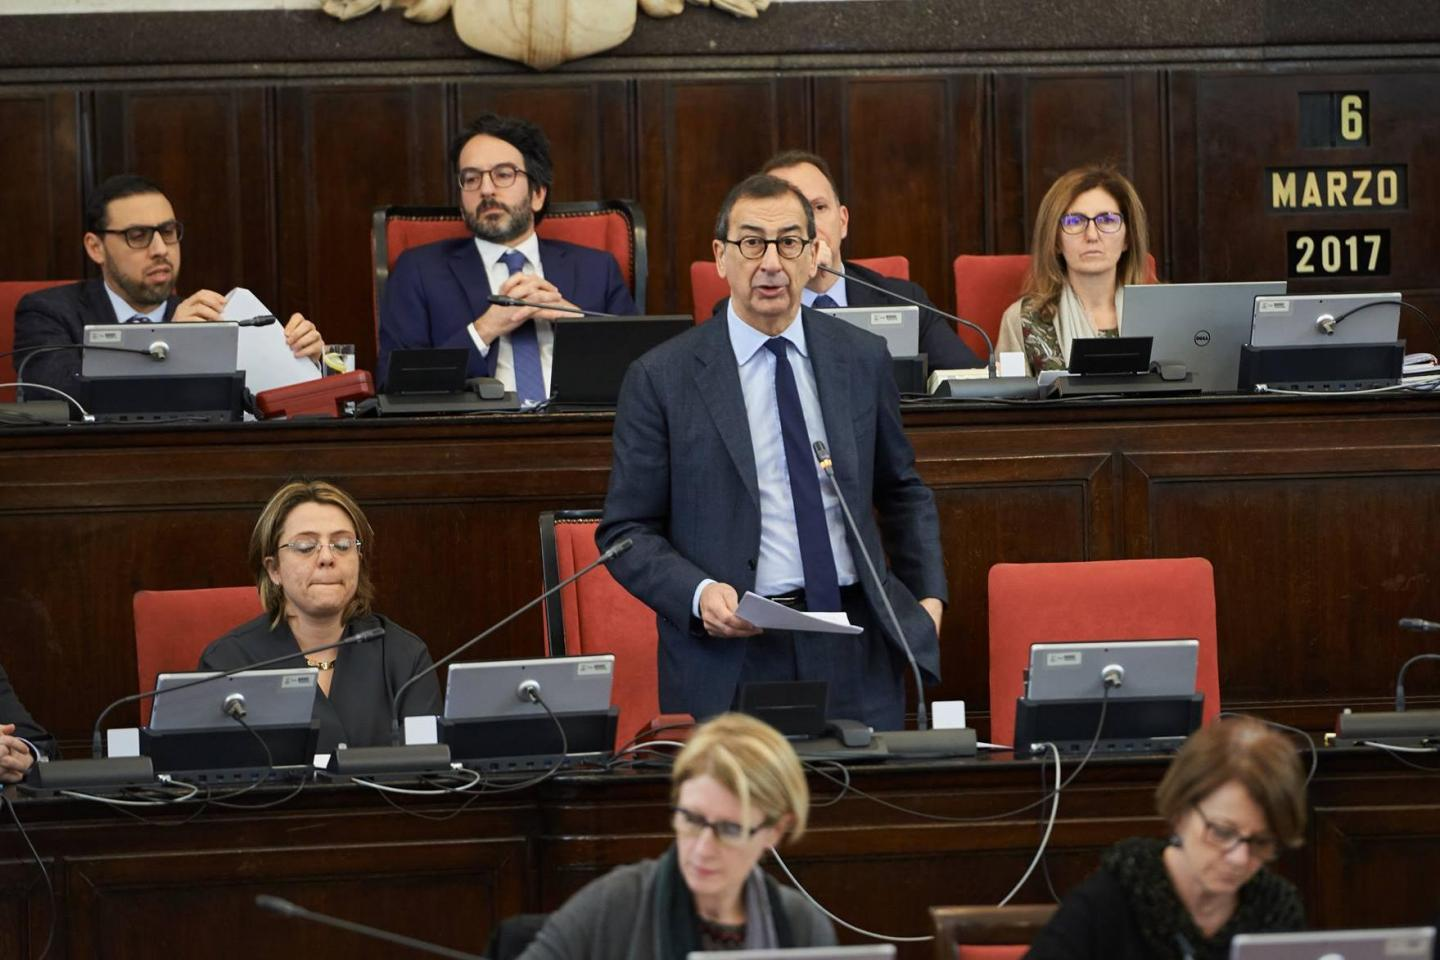 Mayor Sala honouring the Righteous in Milan City Council